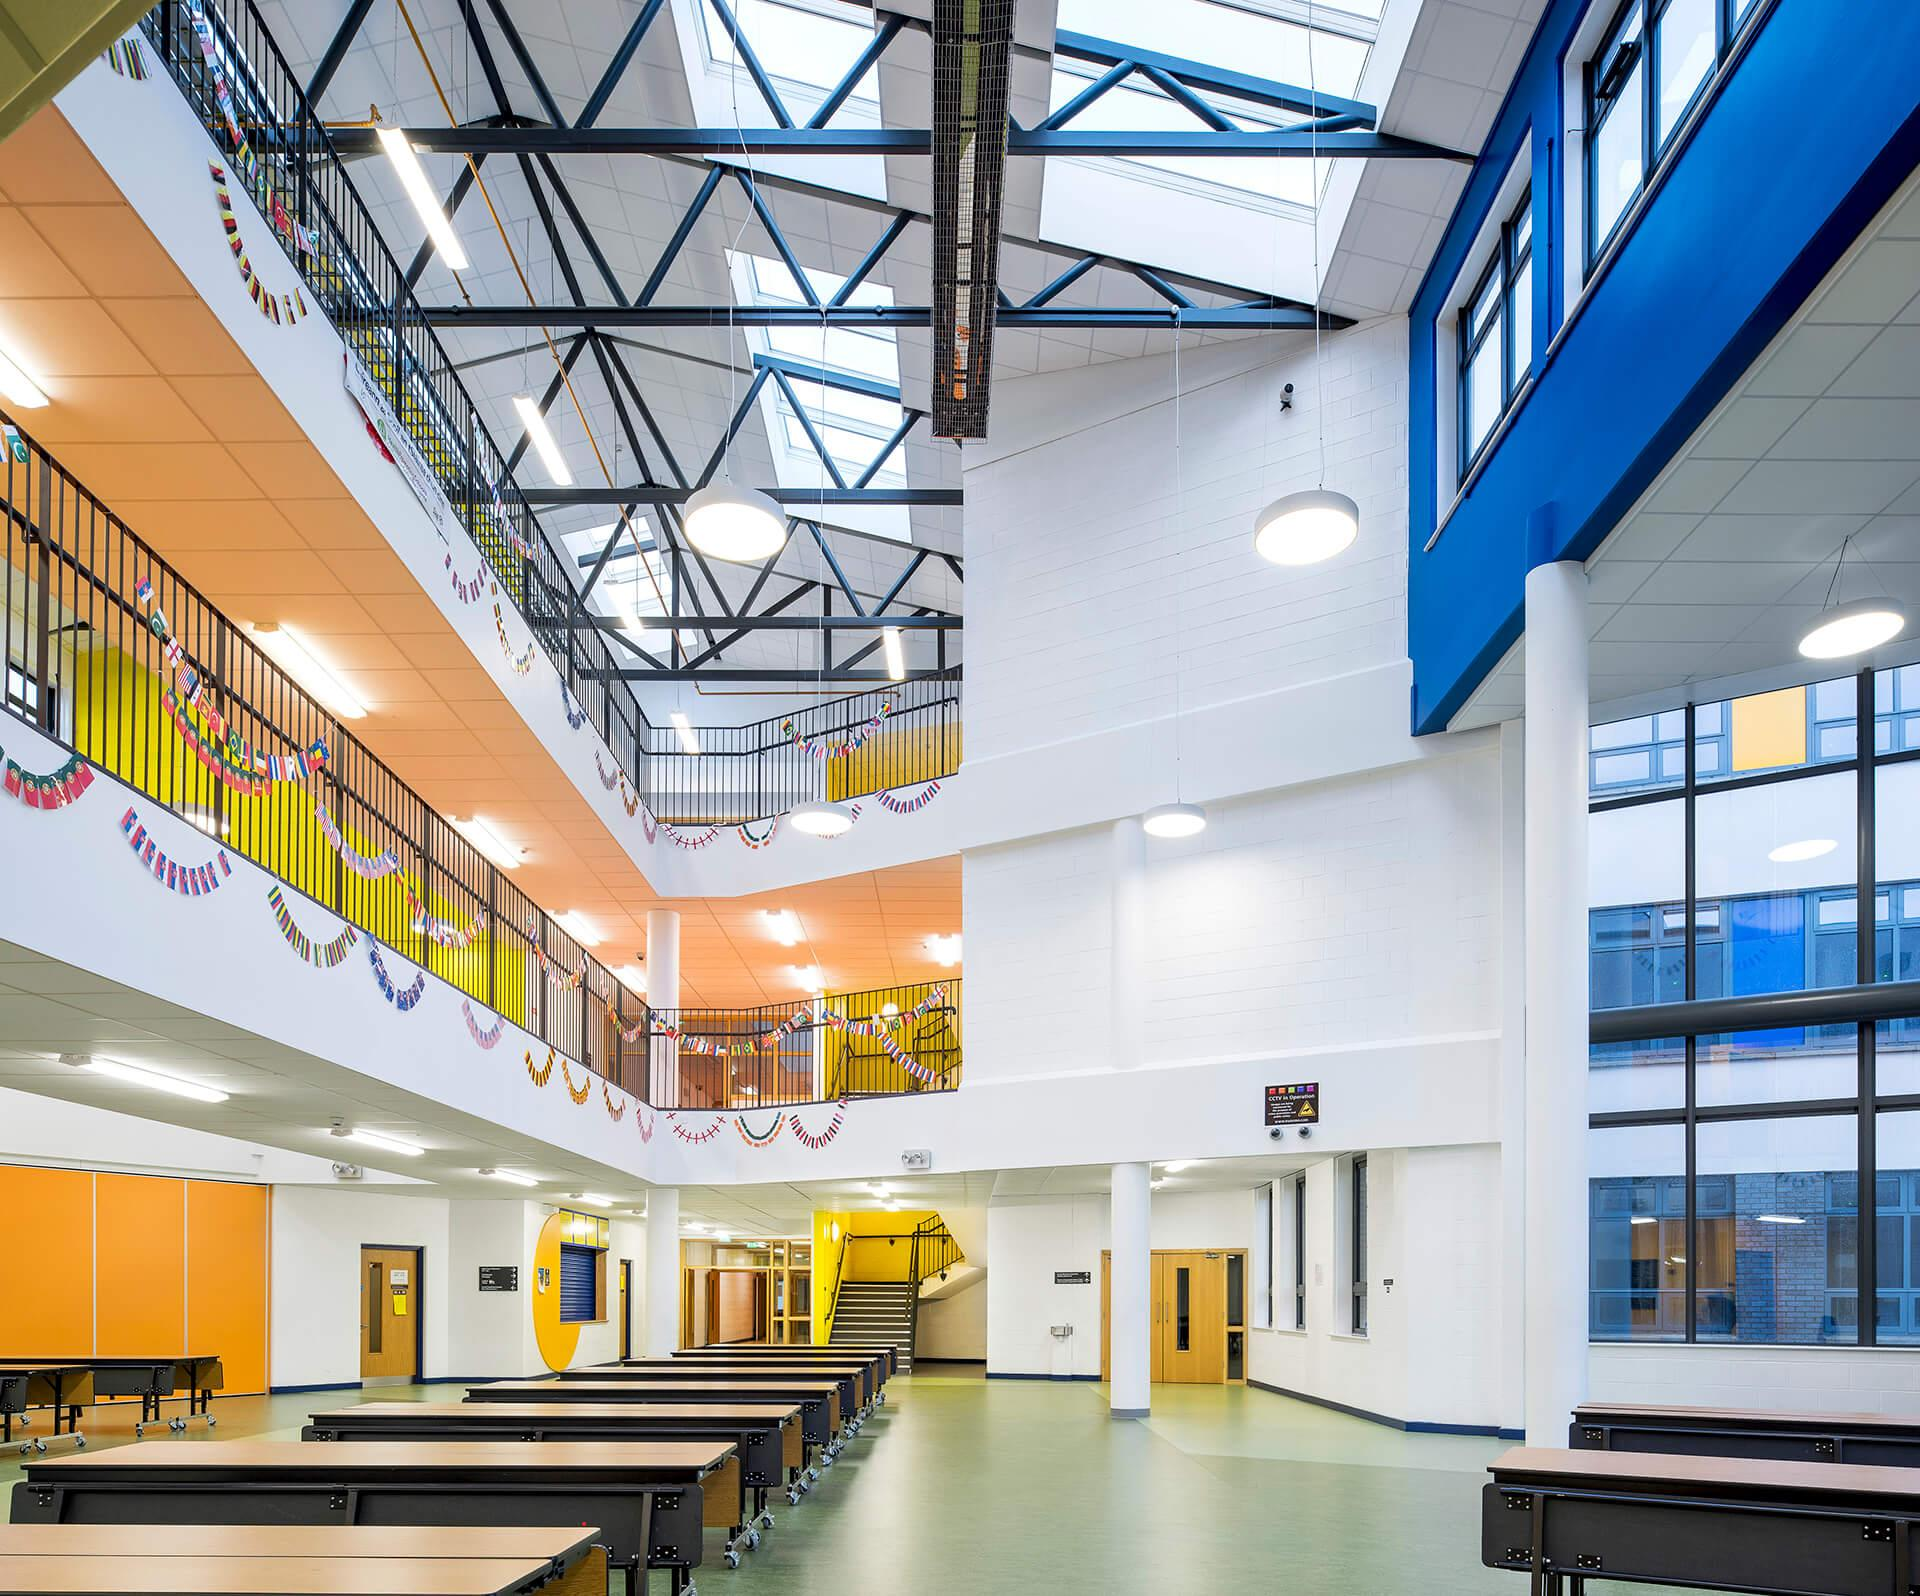 Creagh College Secondary School, Gorey, Co. Wexford - BAM Schools Bundle 3 PPP